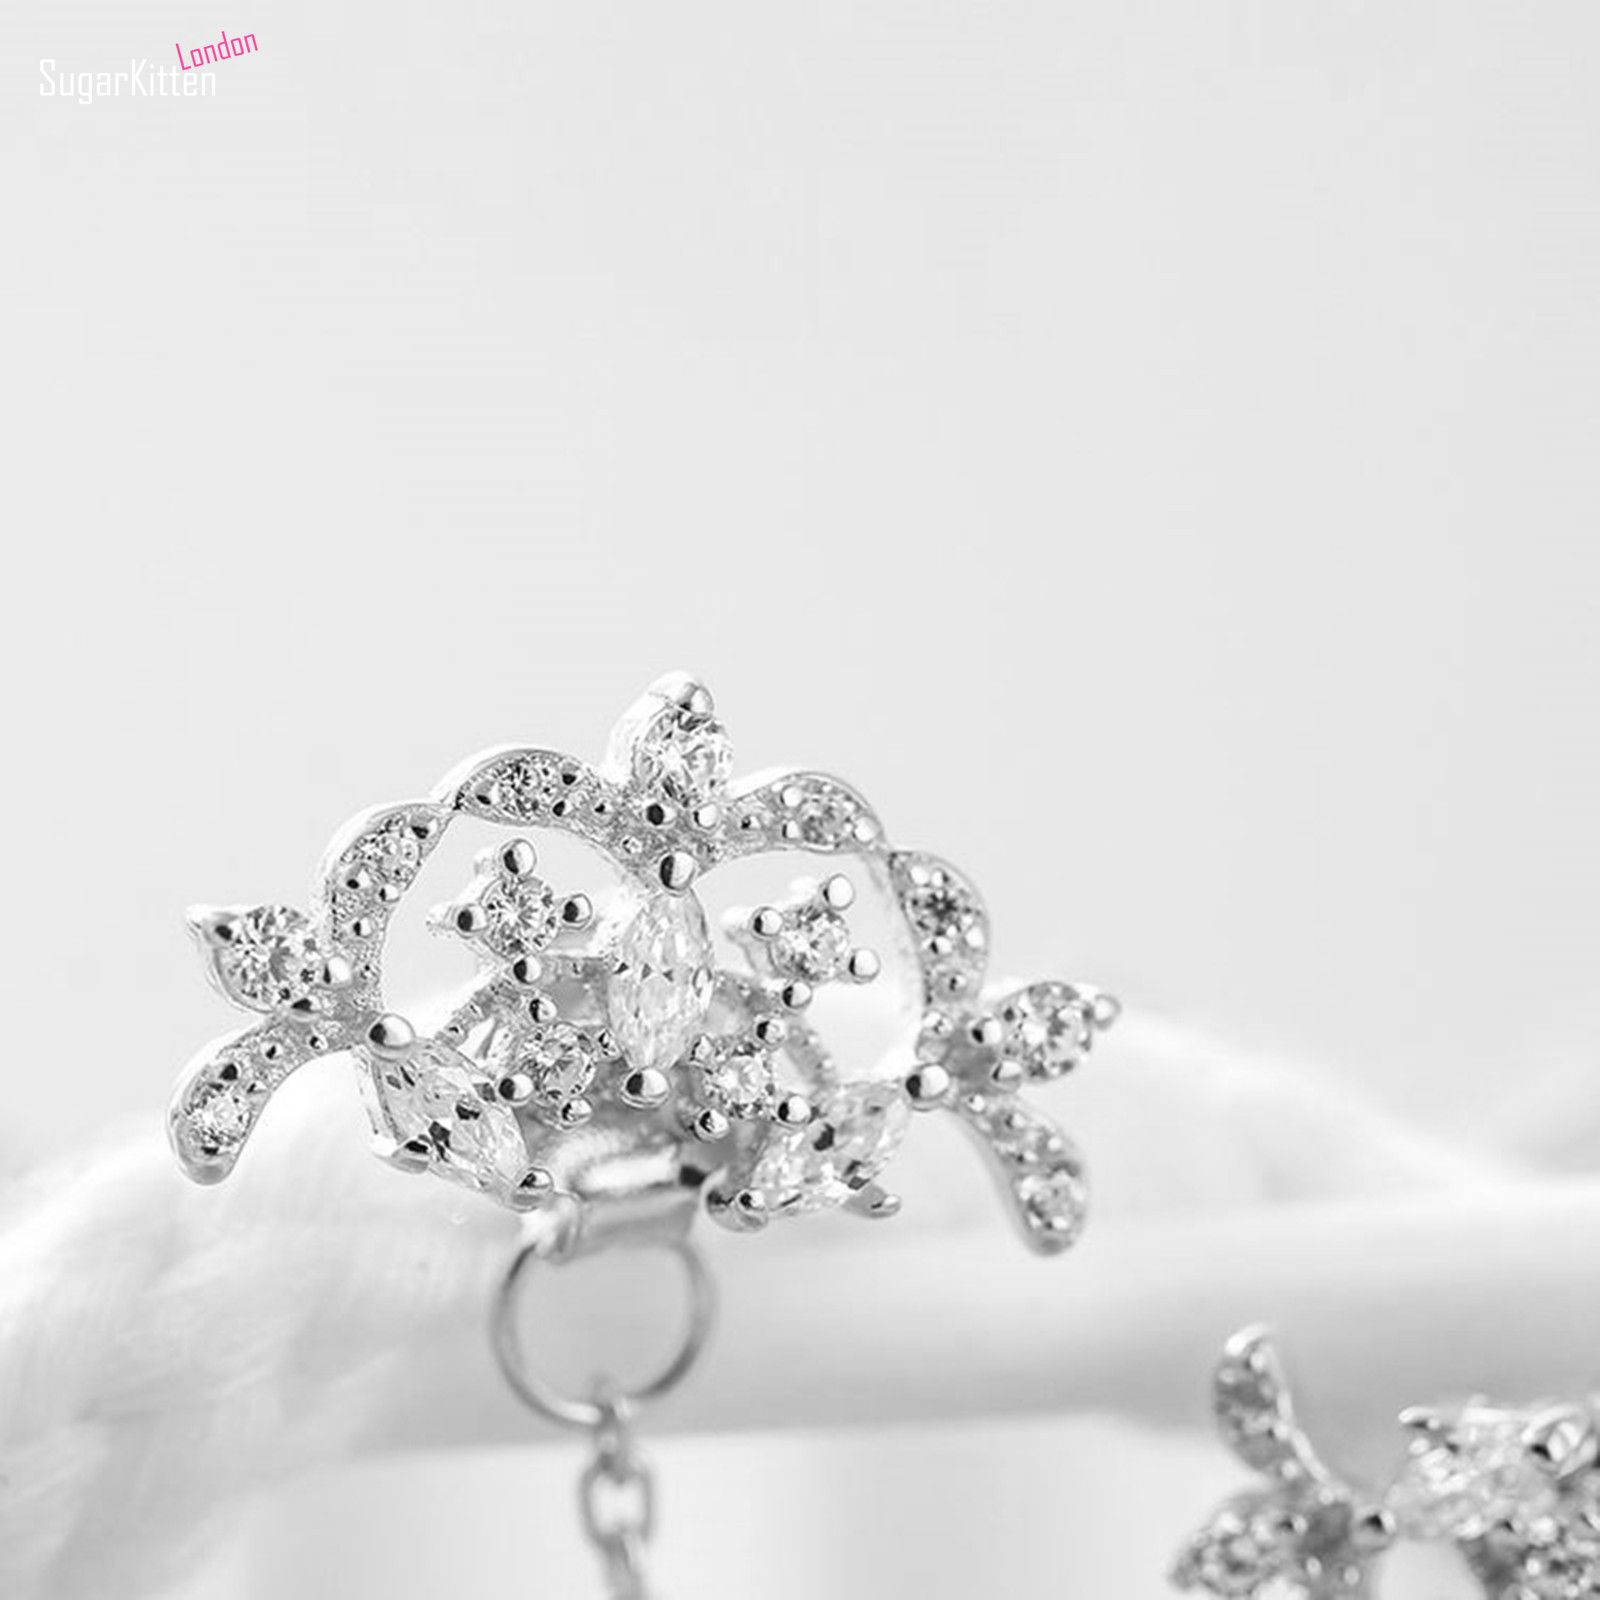 Details about New Unique 925 Sterling Silver CZ Trinity Iris Flower